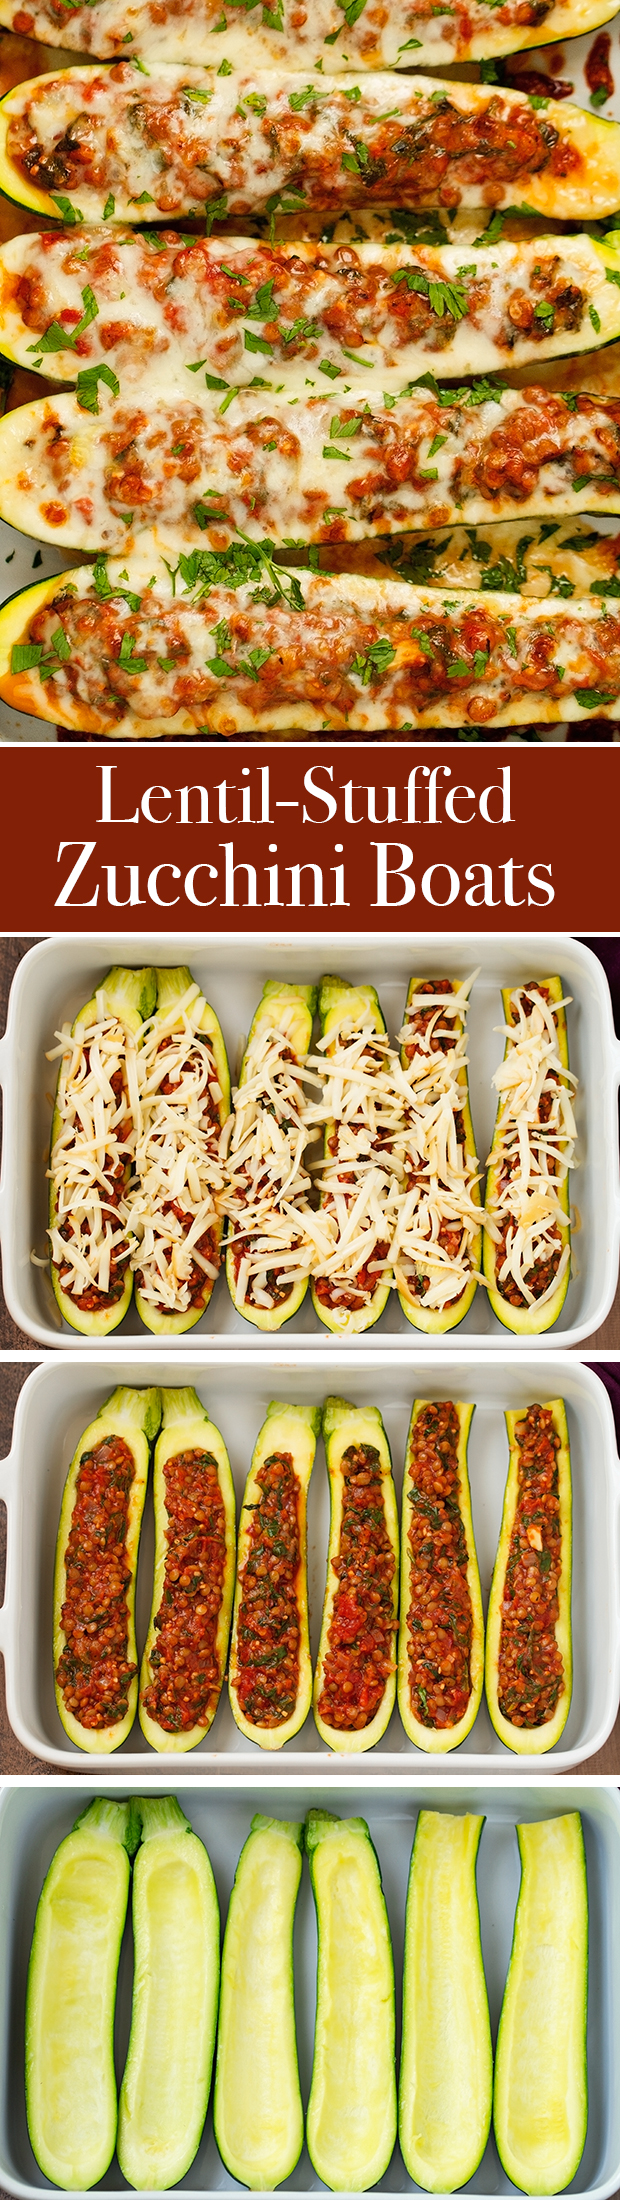 Lentil Stuffed Zucchini Boats - Less than 115 calories per boat and a whopping 8 grams of protein! These are so easy and delicous! #vegetarian #zucchiniboats #stuffedzucchiniboats   Littlespicejar.com @littlespicejar